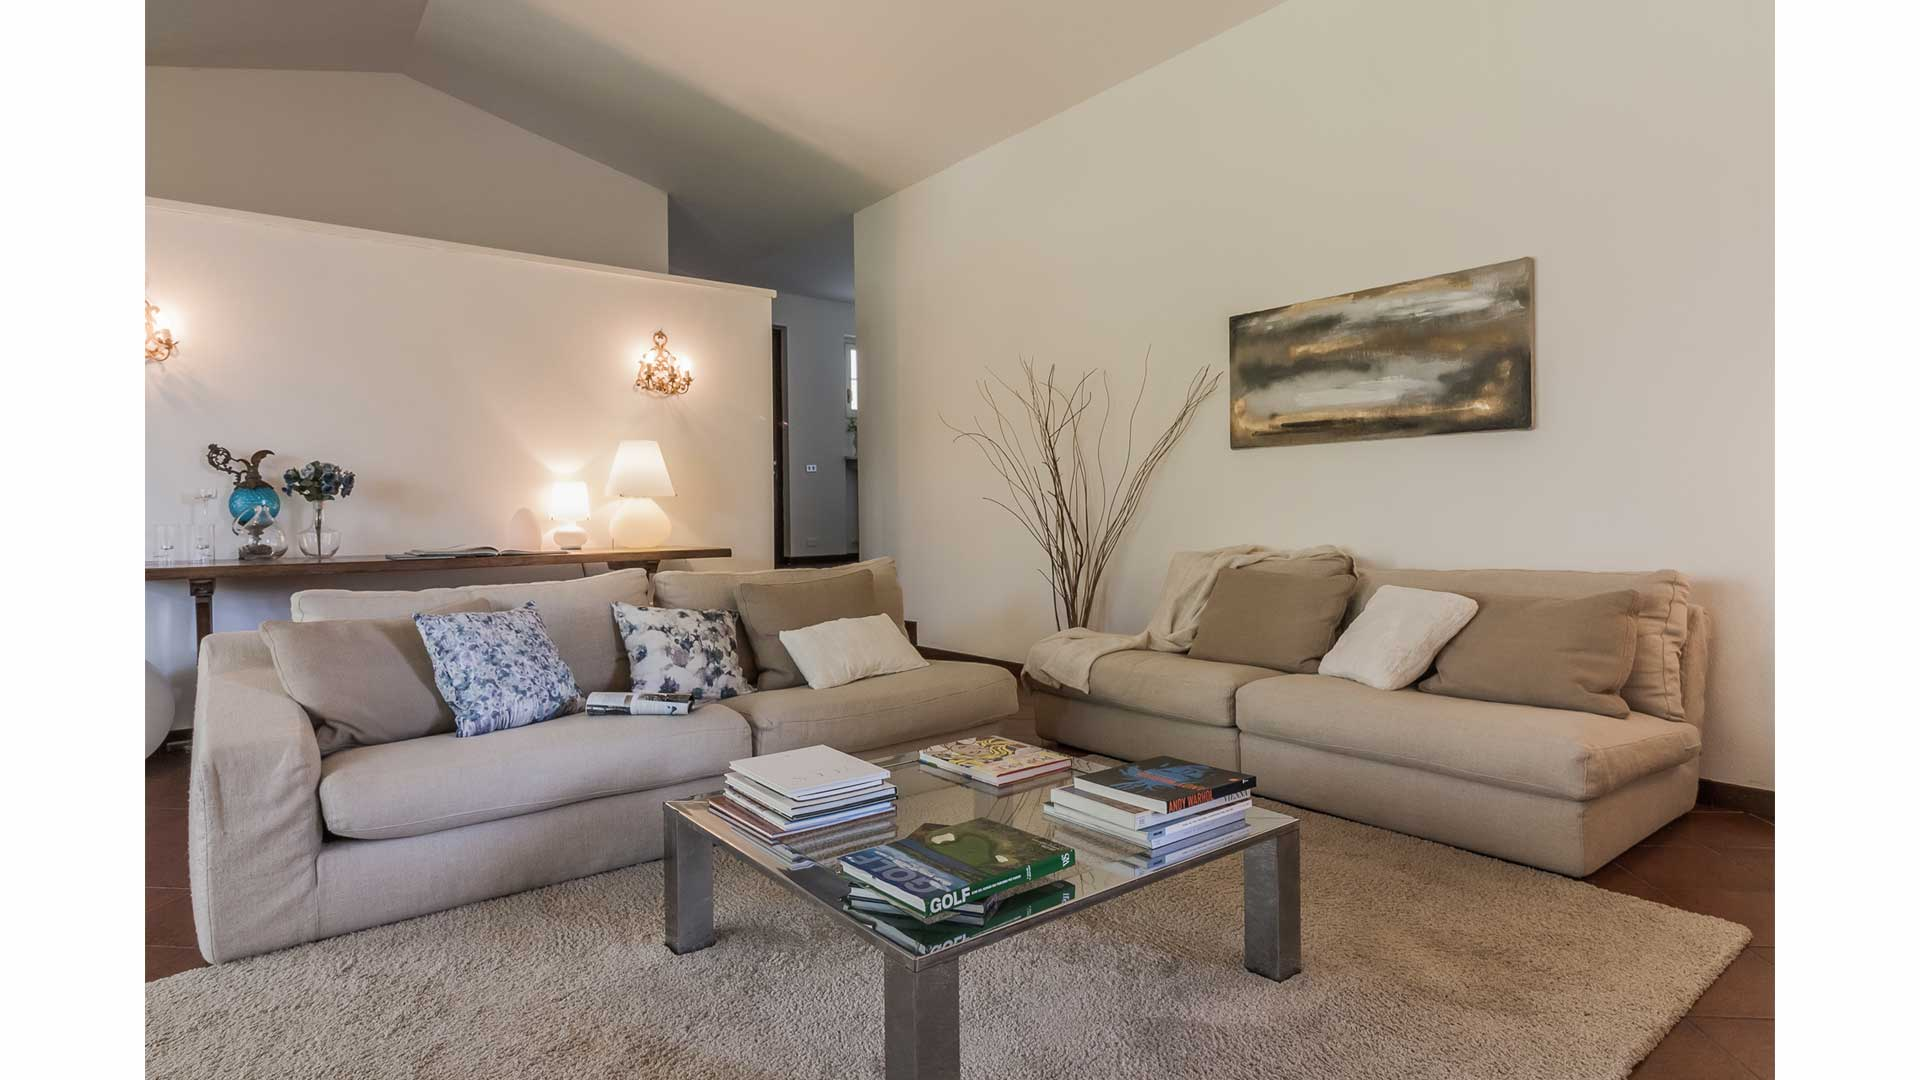 Home Staging villa Parisien Style a Carimate.